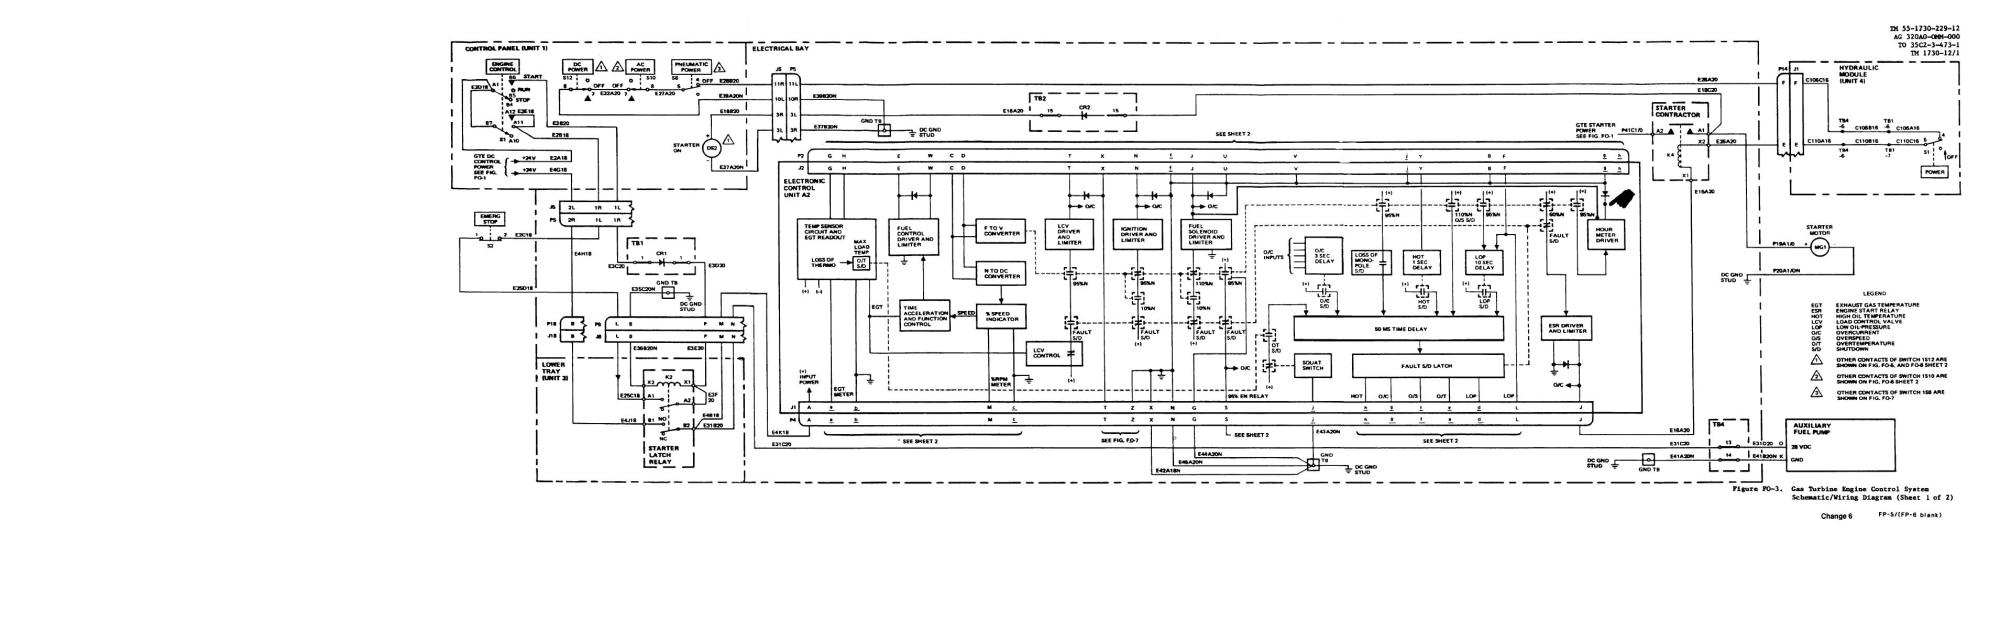 hight resolution of gas turbine engine control system schematic wiring diagram sheet 1 of 2